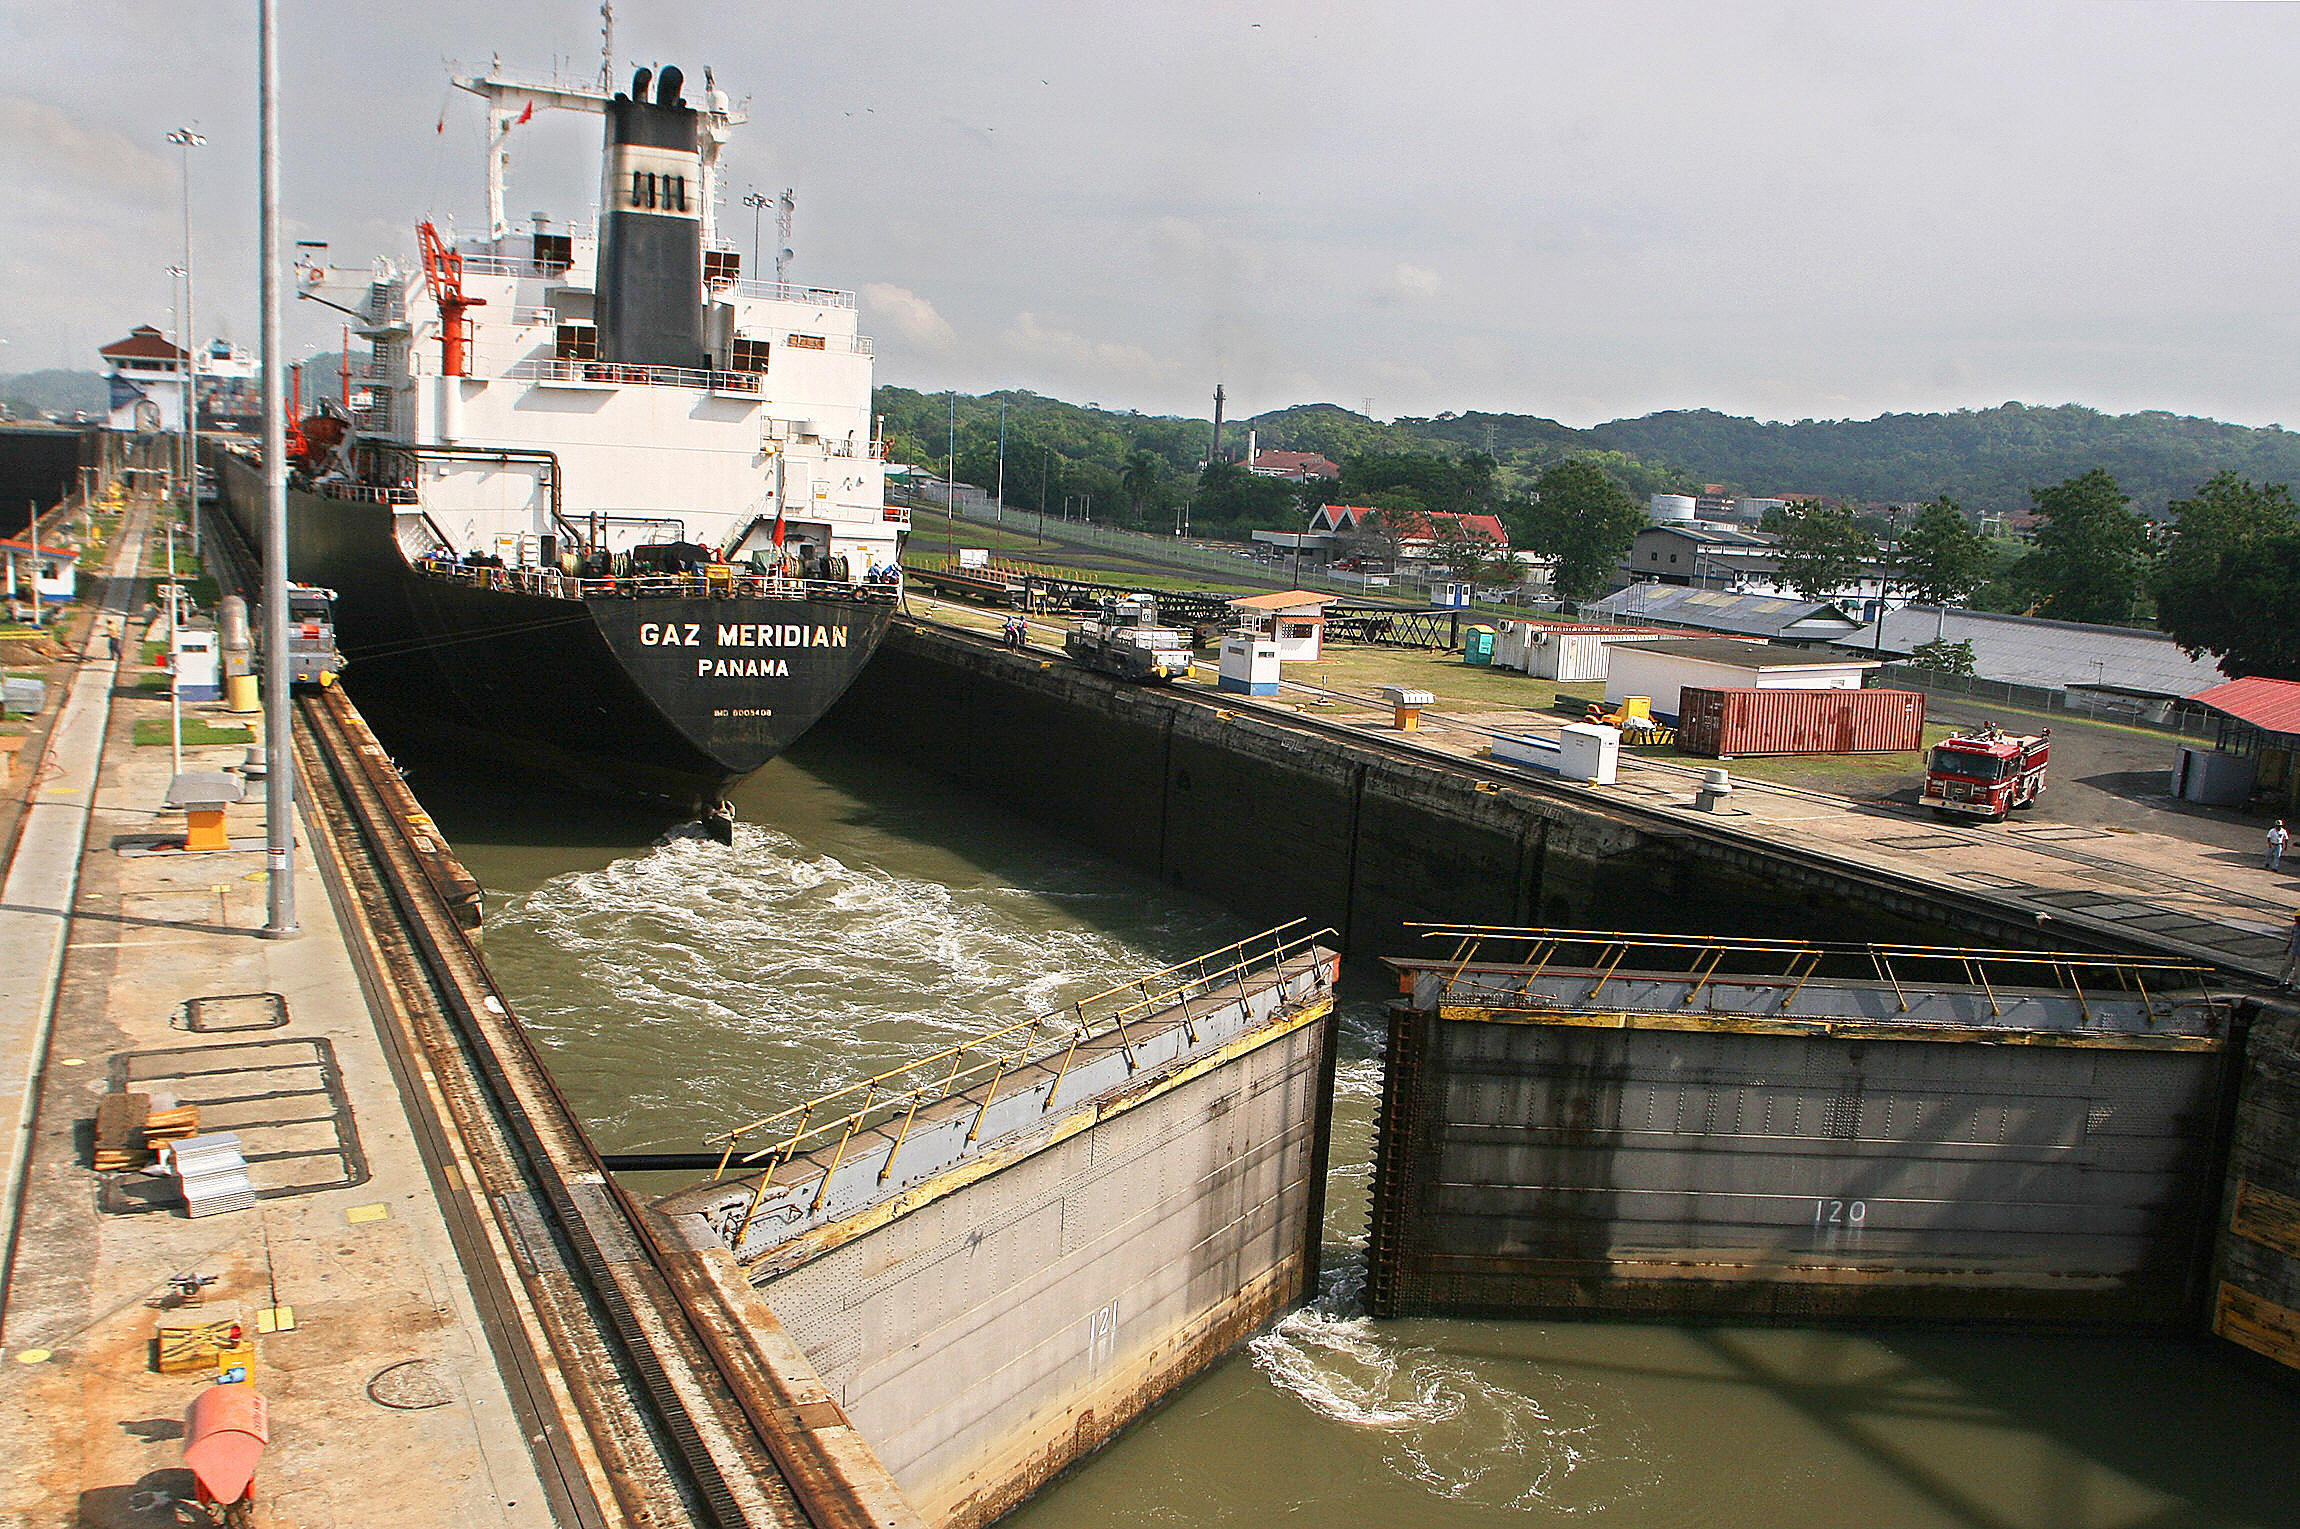 gallery years of the canal in photos newshour a tanker crosses through the canal s miraflores locks on 21 2006 the